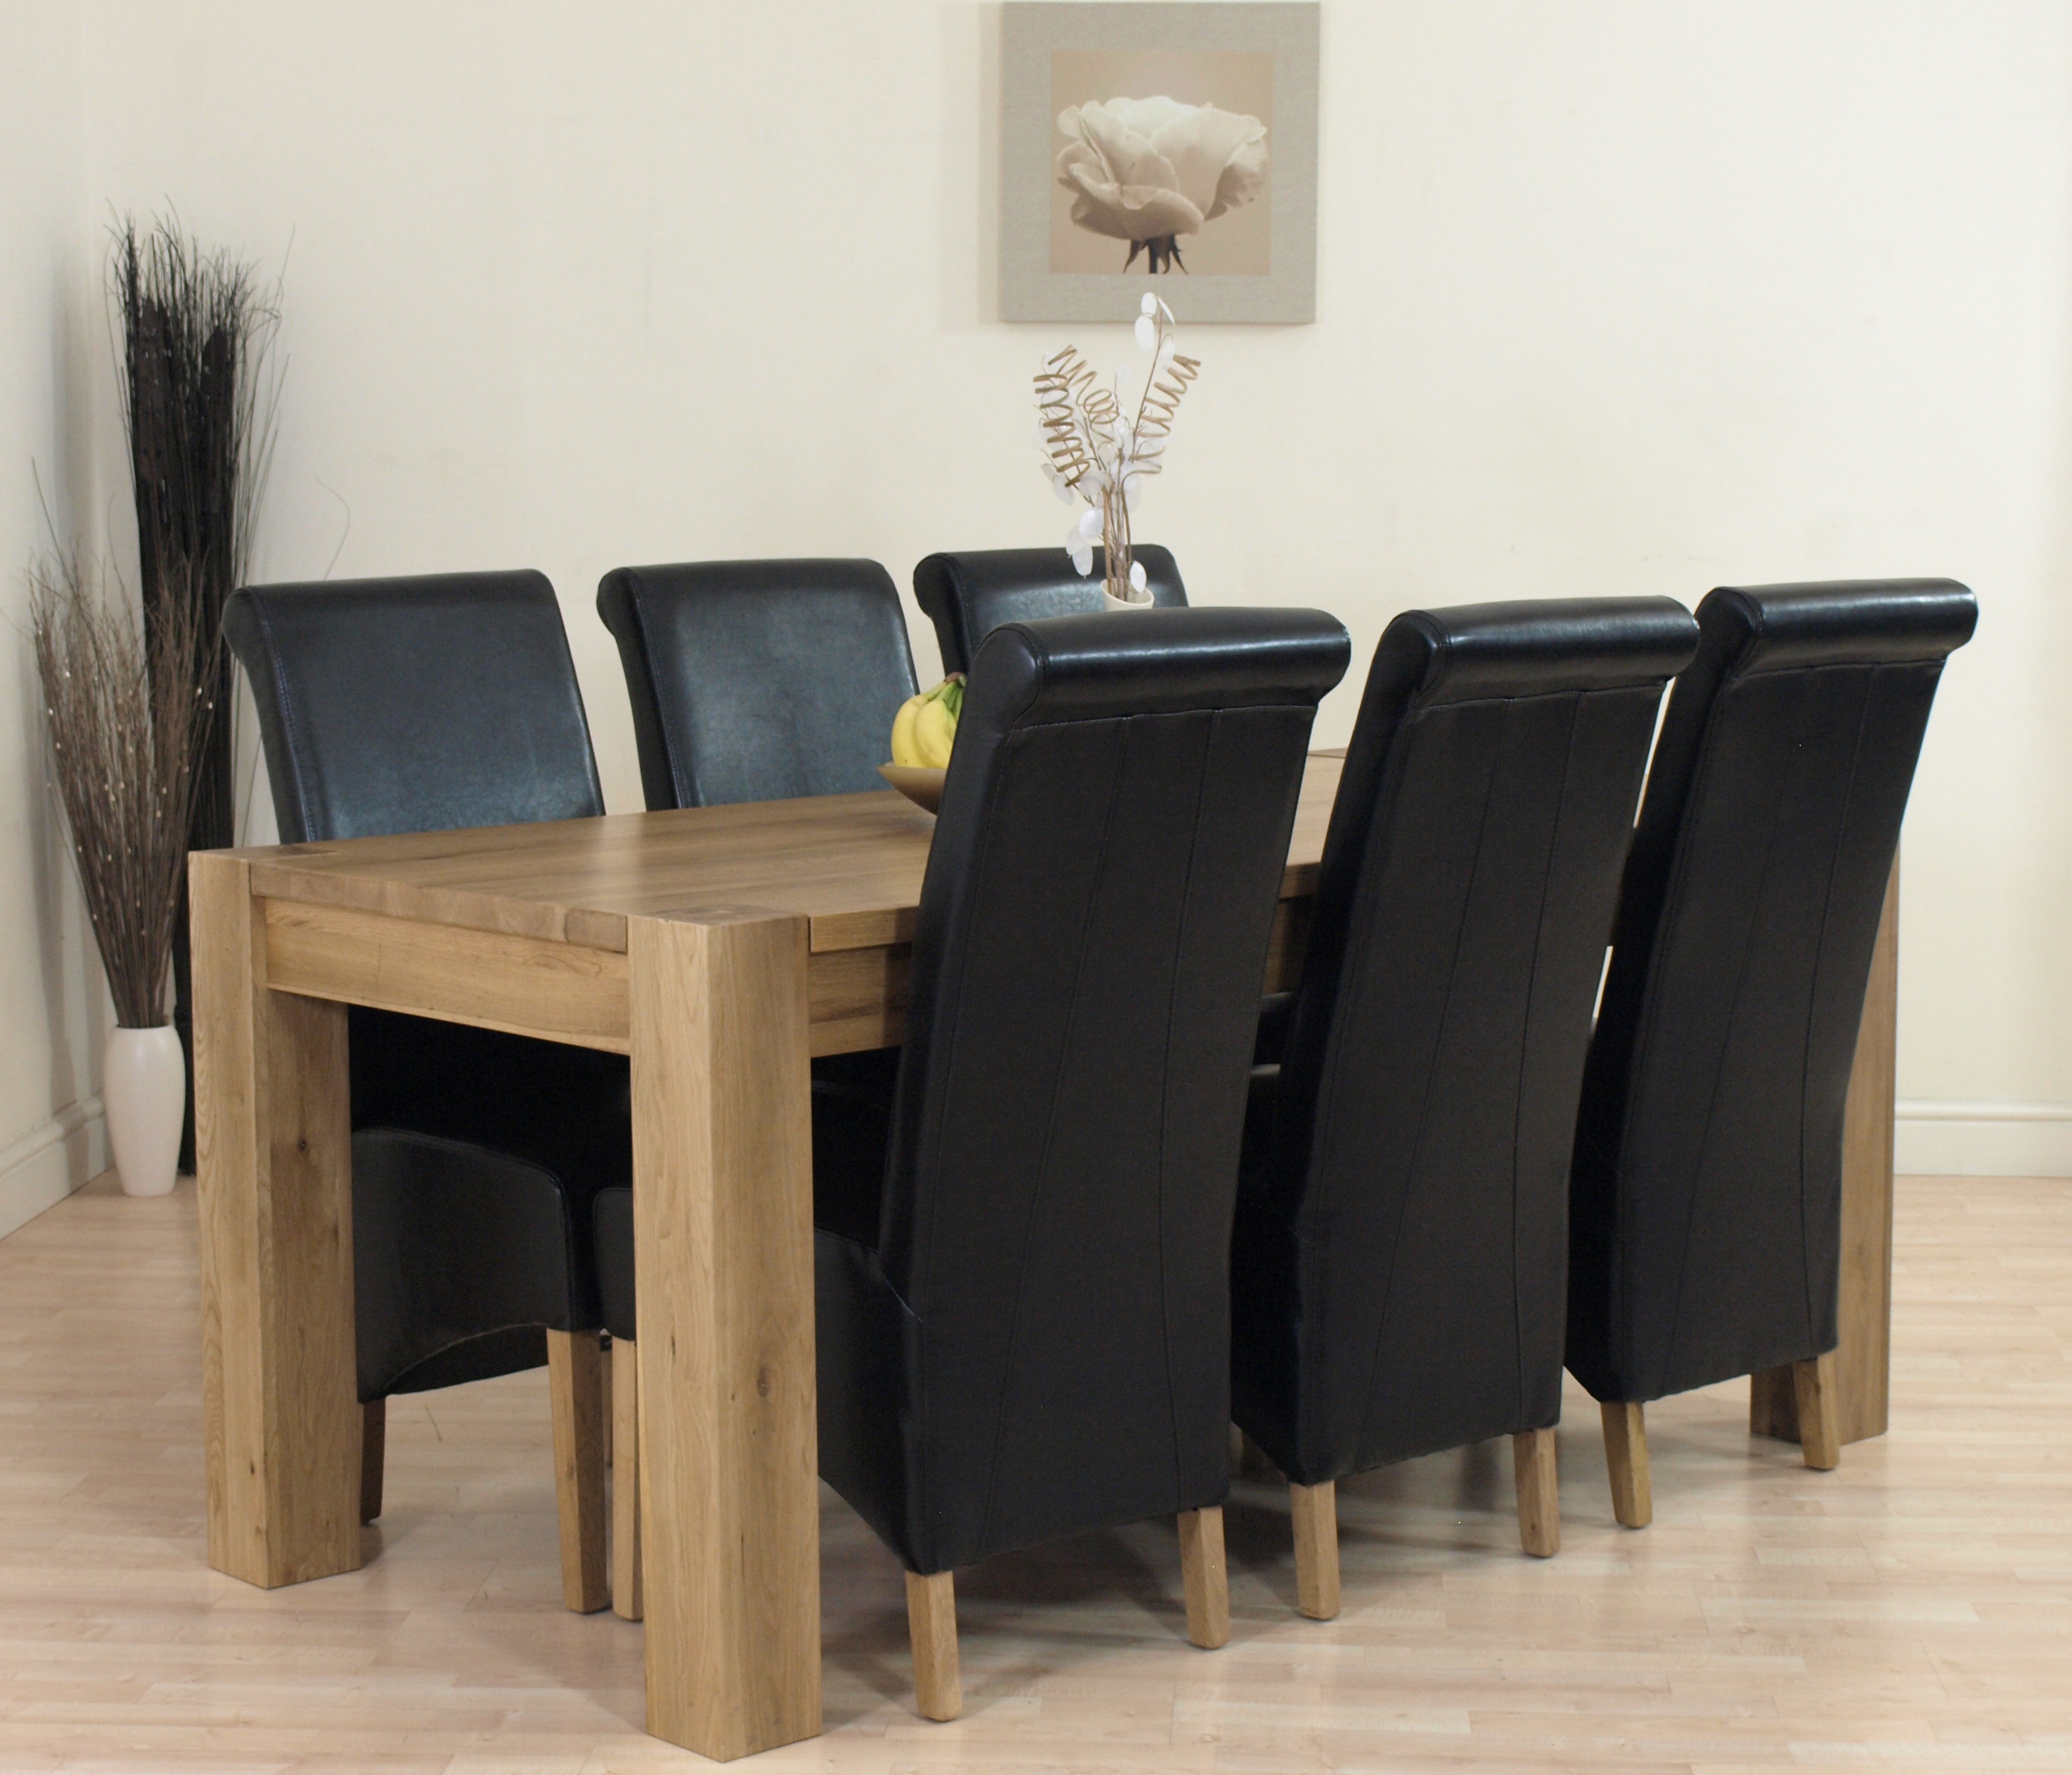 KUBA SOLID OAK DINING TABLE AND 6 BLACK LEATHER CHAIRS EBay. Full resolution  image, nominally Width 2913 Height 2496 pixels, image with #826849.